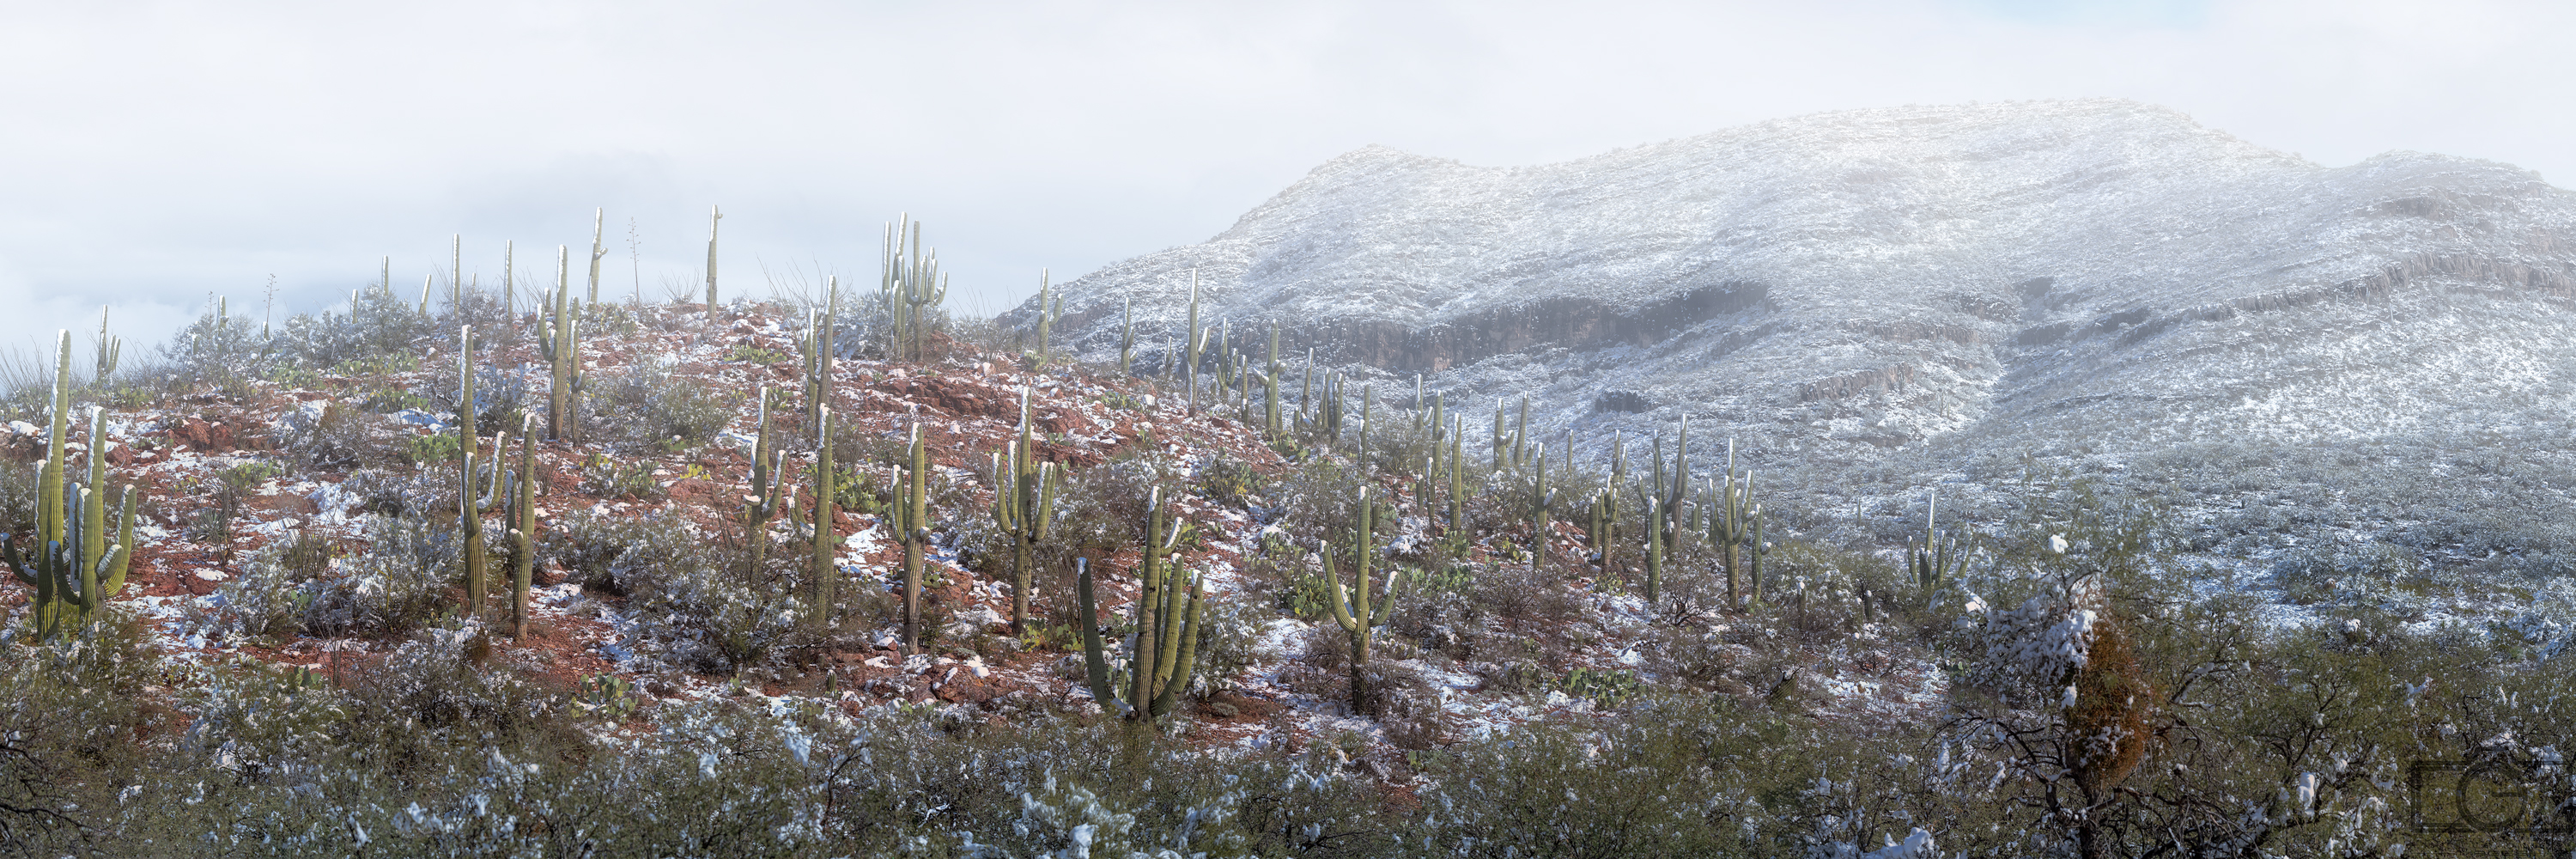 vail tucson snow covered saguaro